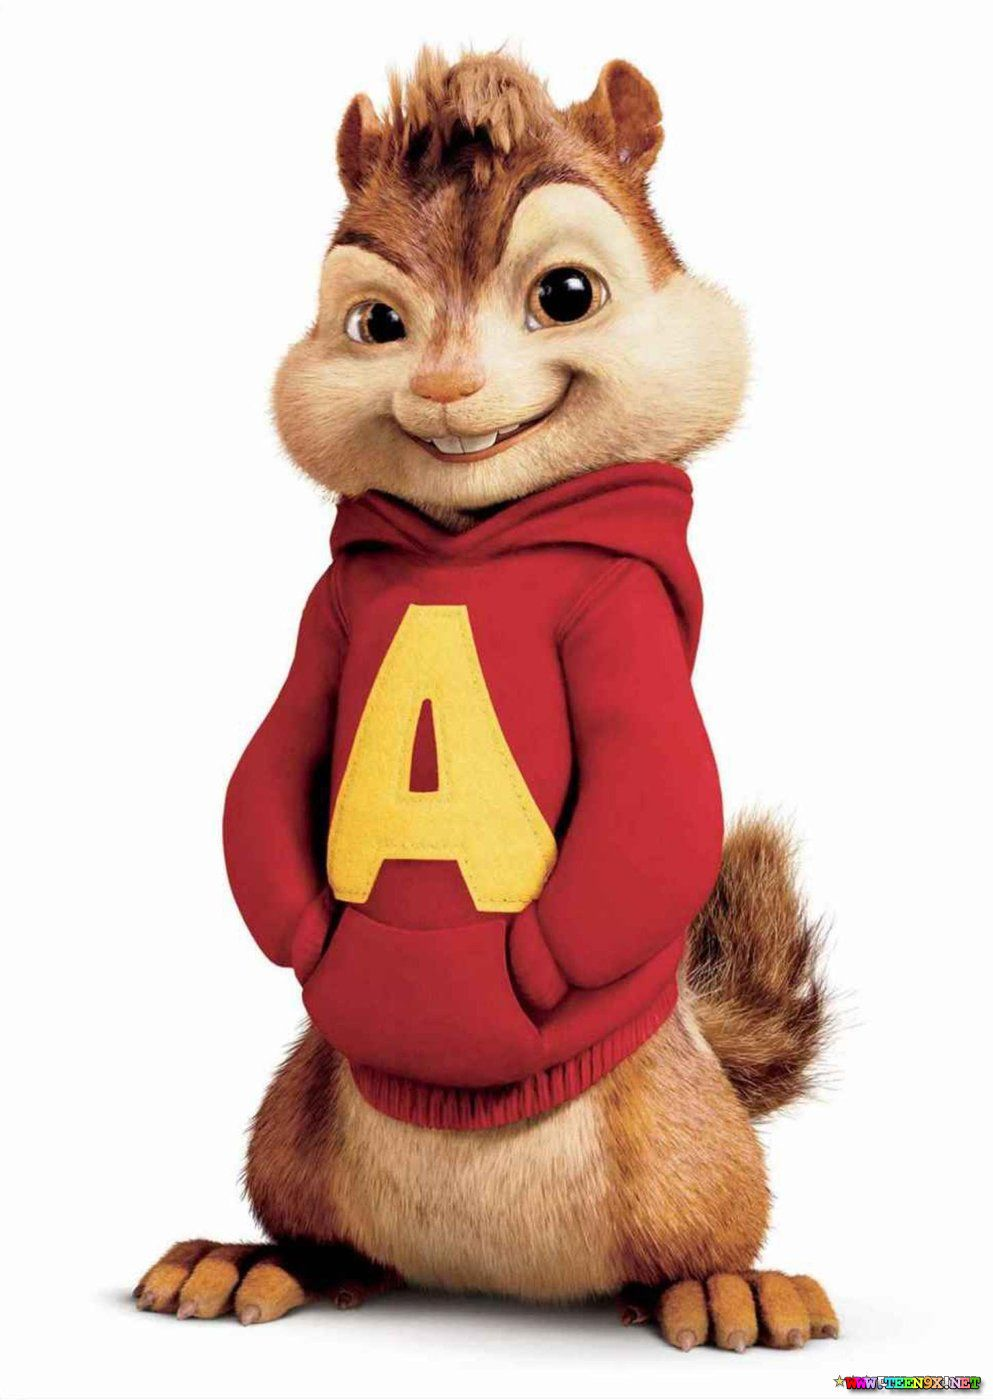 Alvin And The Chipmunks 3 Images alvin-alvin-and-the-chipmunks-3-chip-wrecked-27096005-993